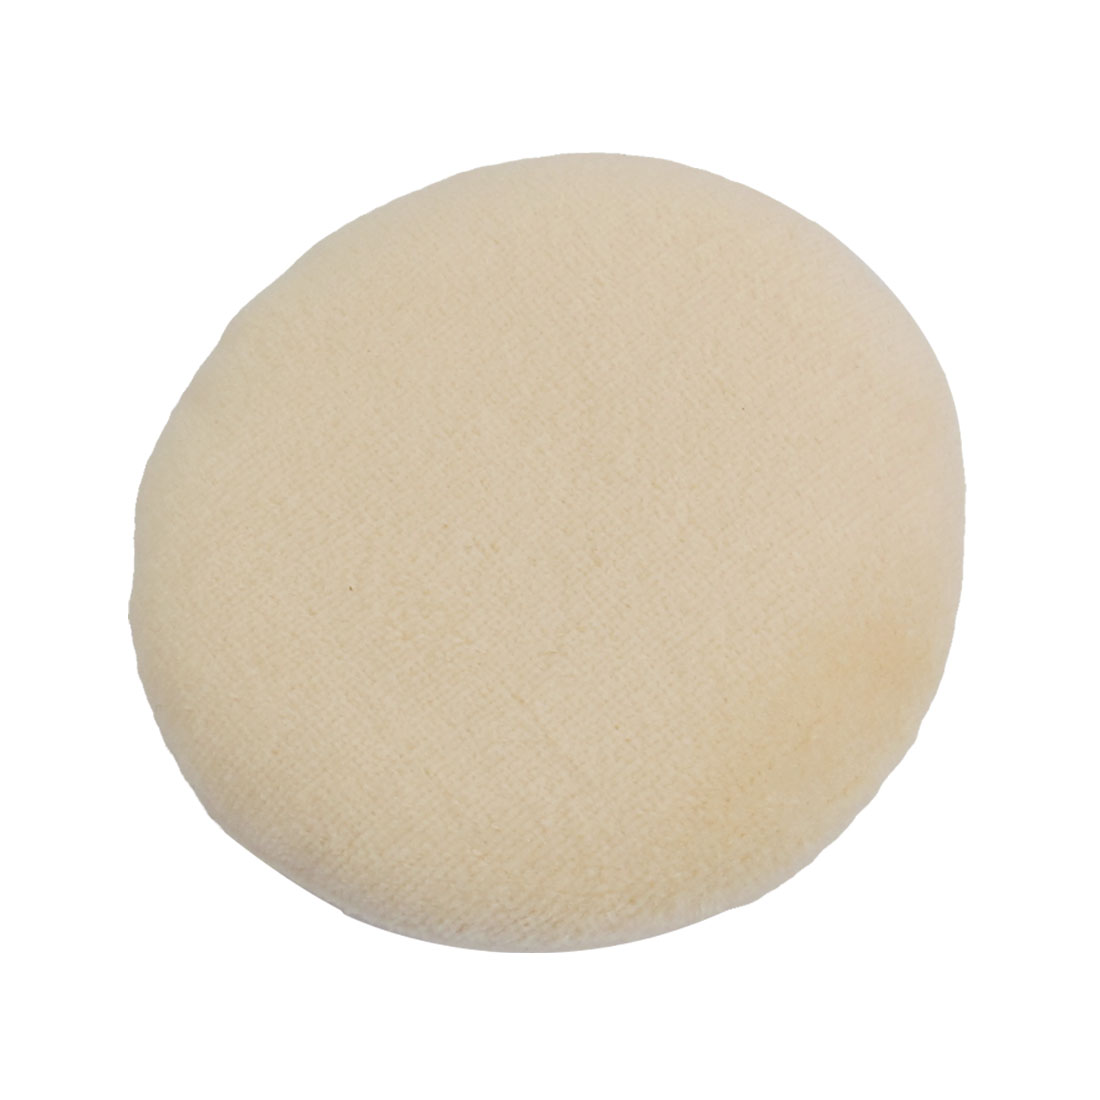 Beige Plush Sponge Round Shaped Facial Makeup Powder Puff for Lady